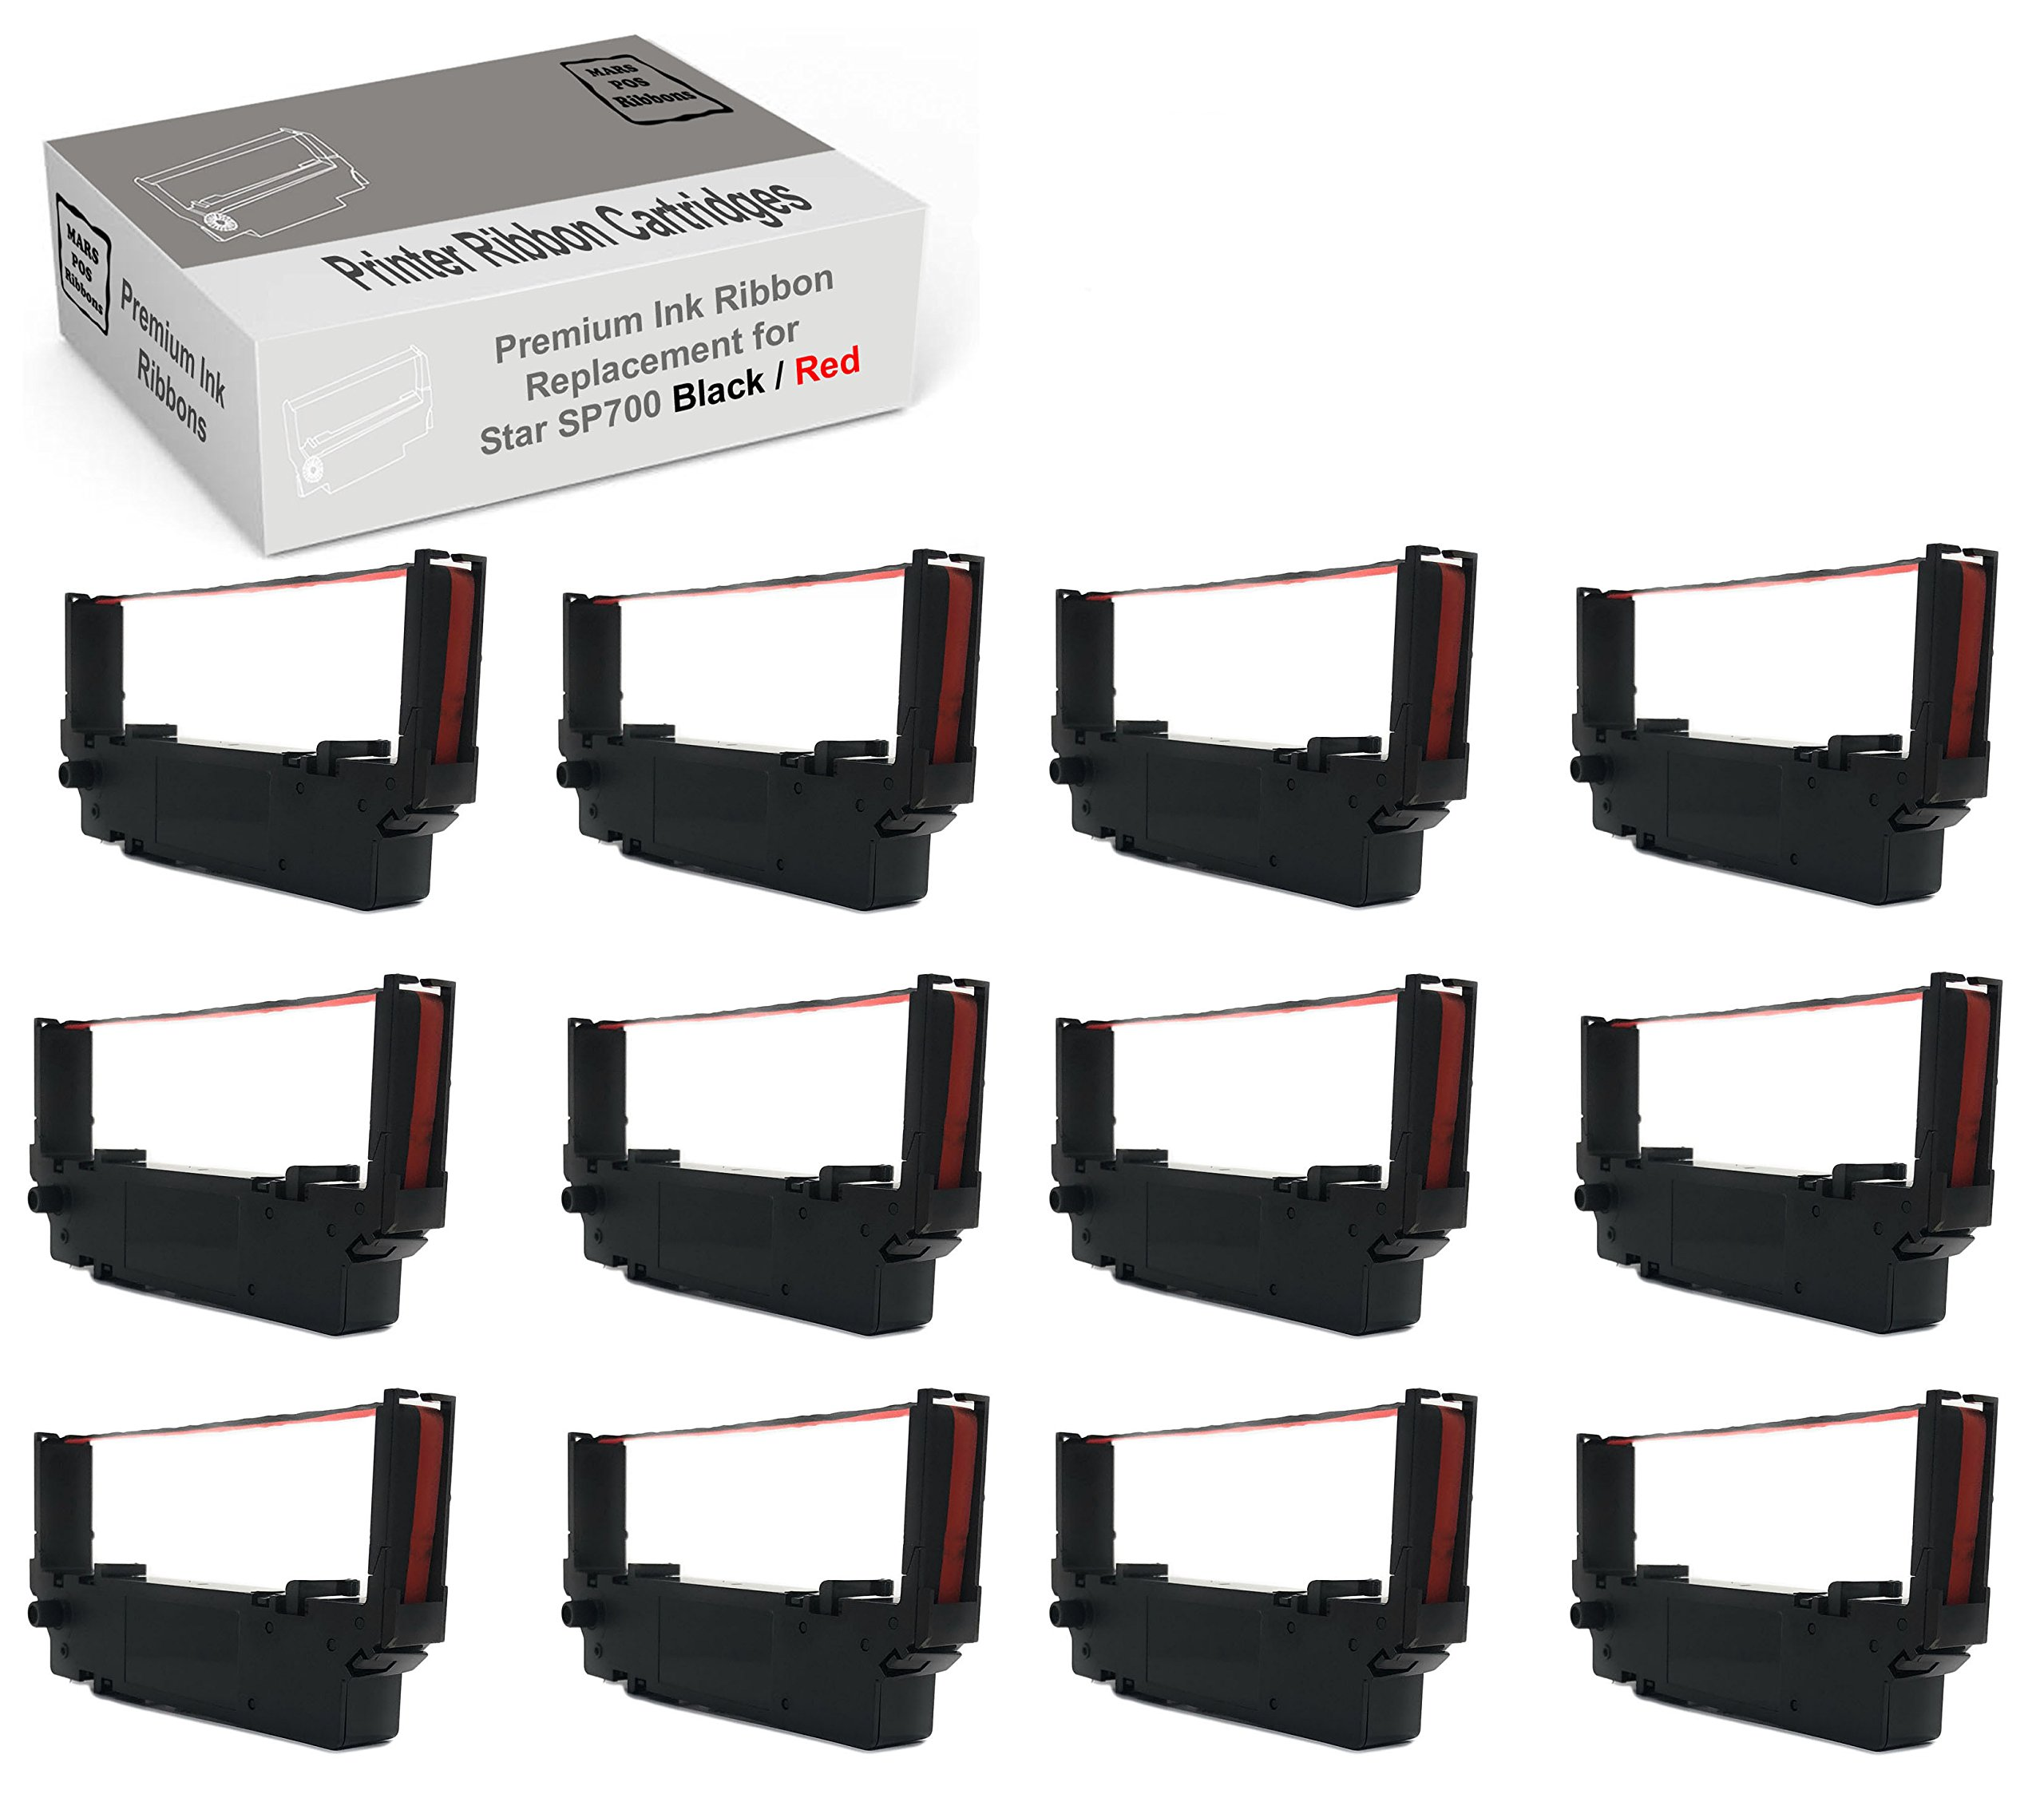 Mars POS Ribbons Star SP700 Printer Ribbon 12 Pack Star RC700BR Black Red Compatible Ribbons for Star SP700 712 742